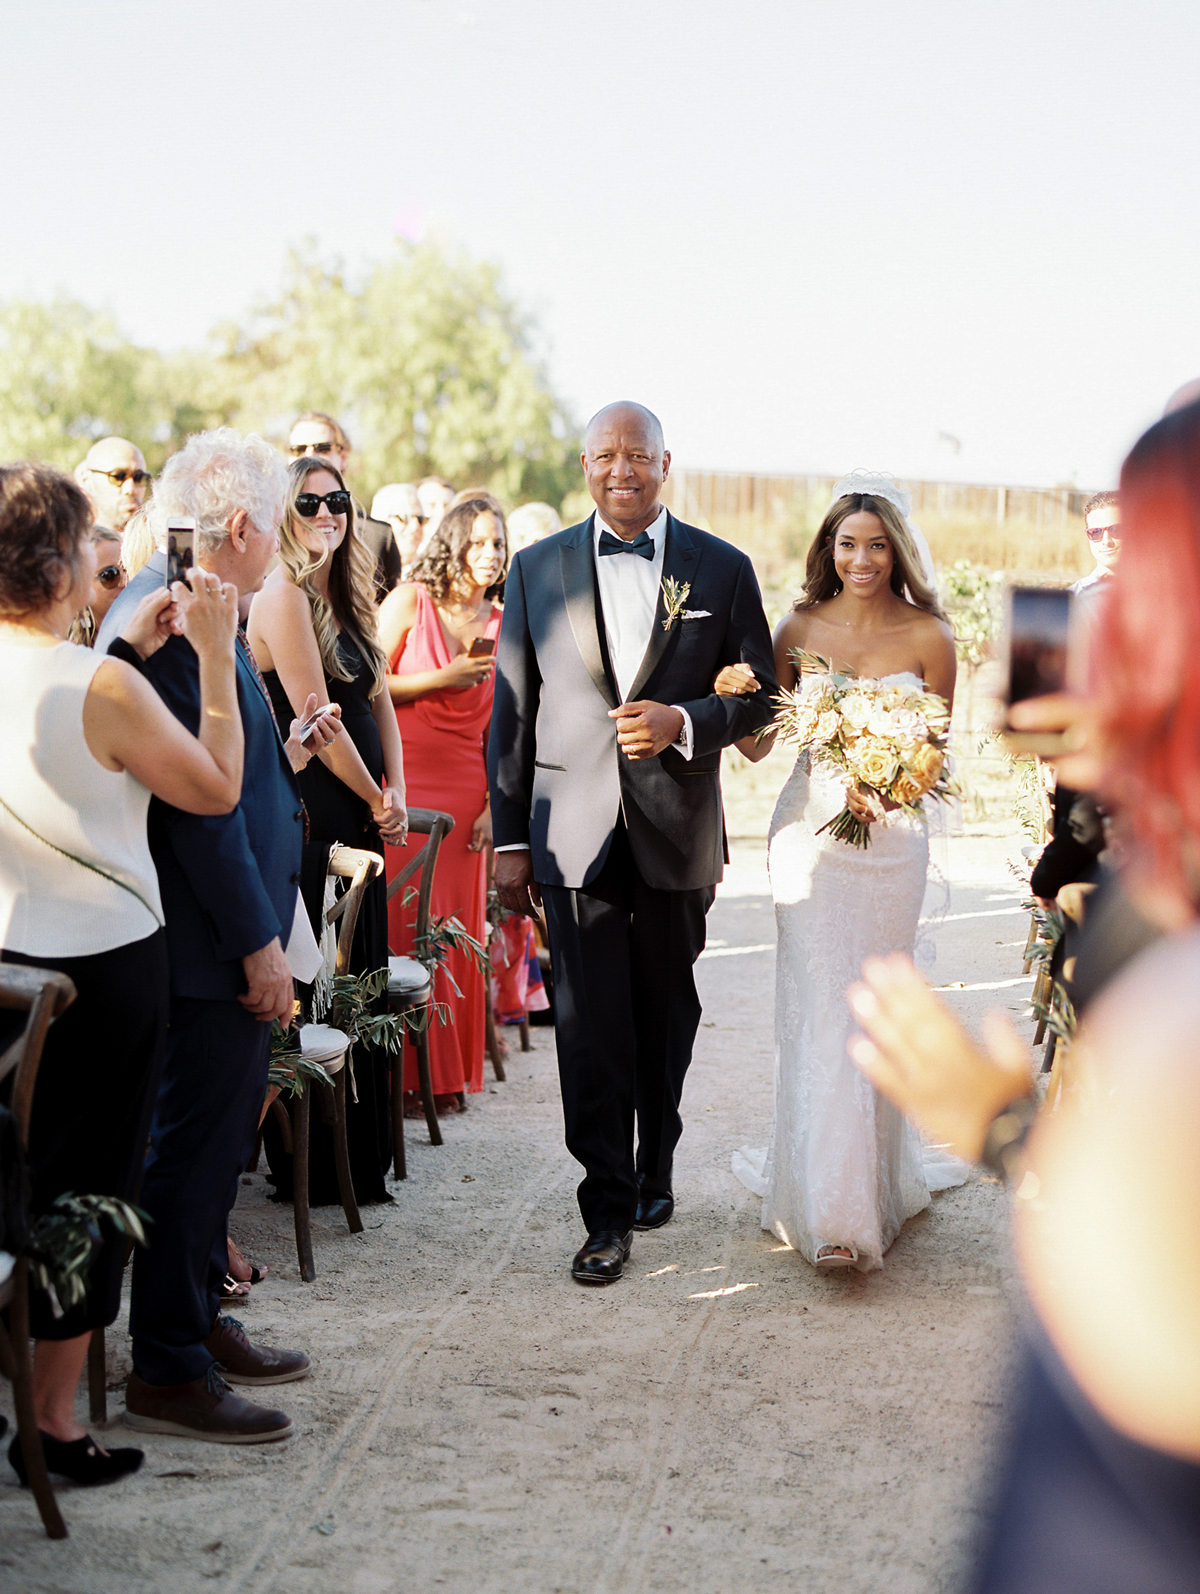 father of the bride walking bride down outdoor vineyard wedding aisle